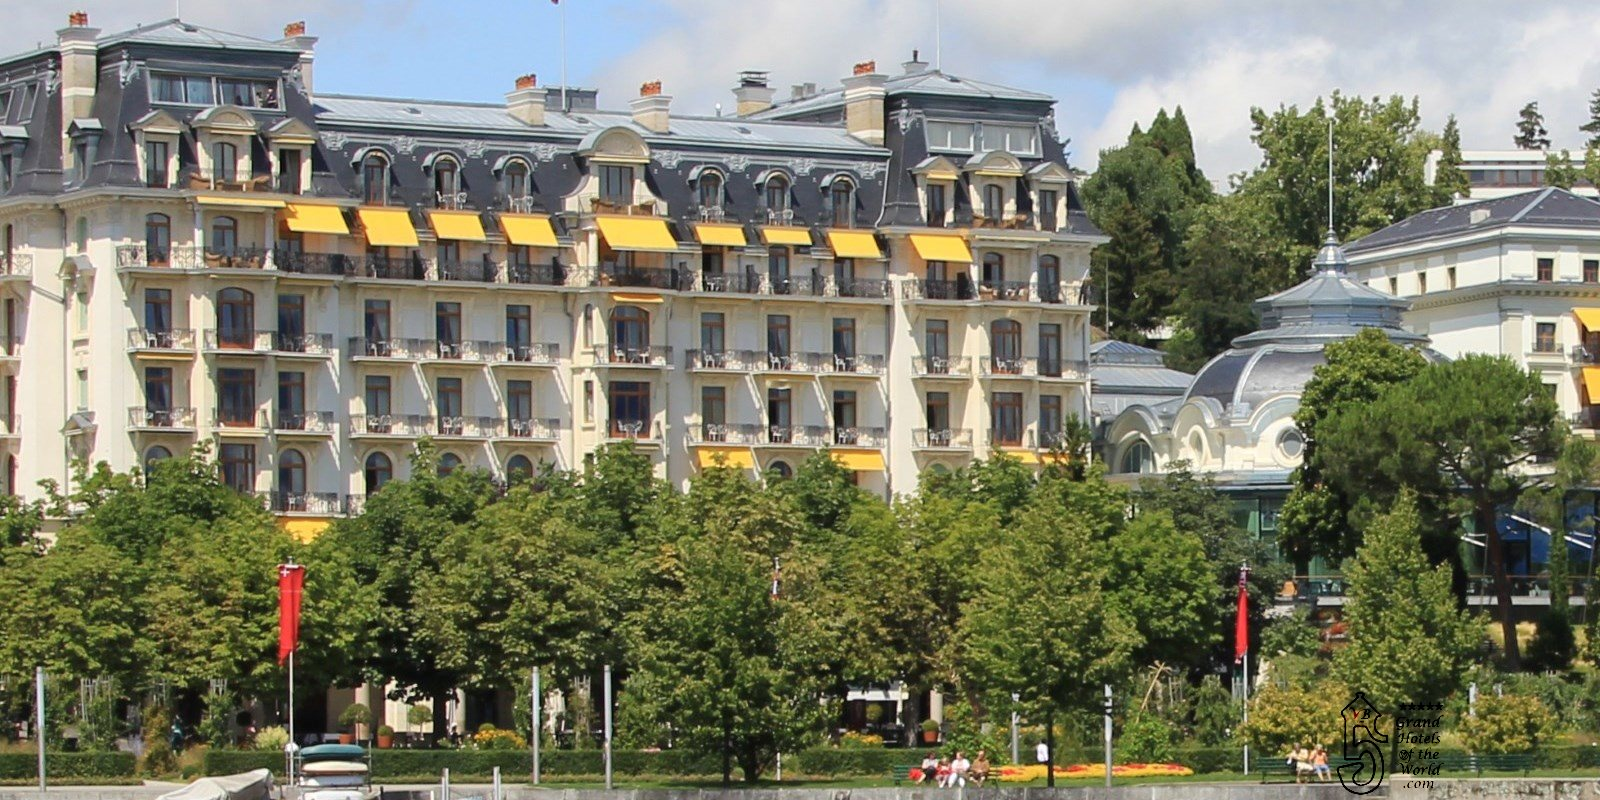 Beaurivage Palace in Lausanne